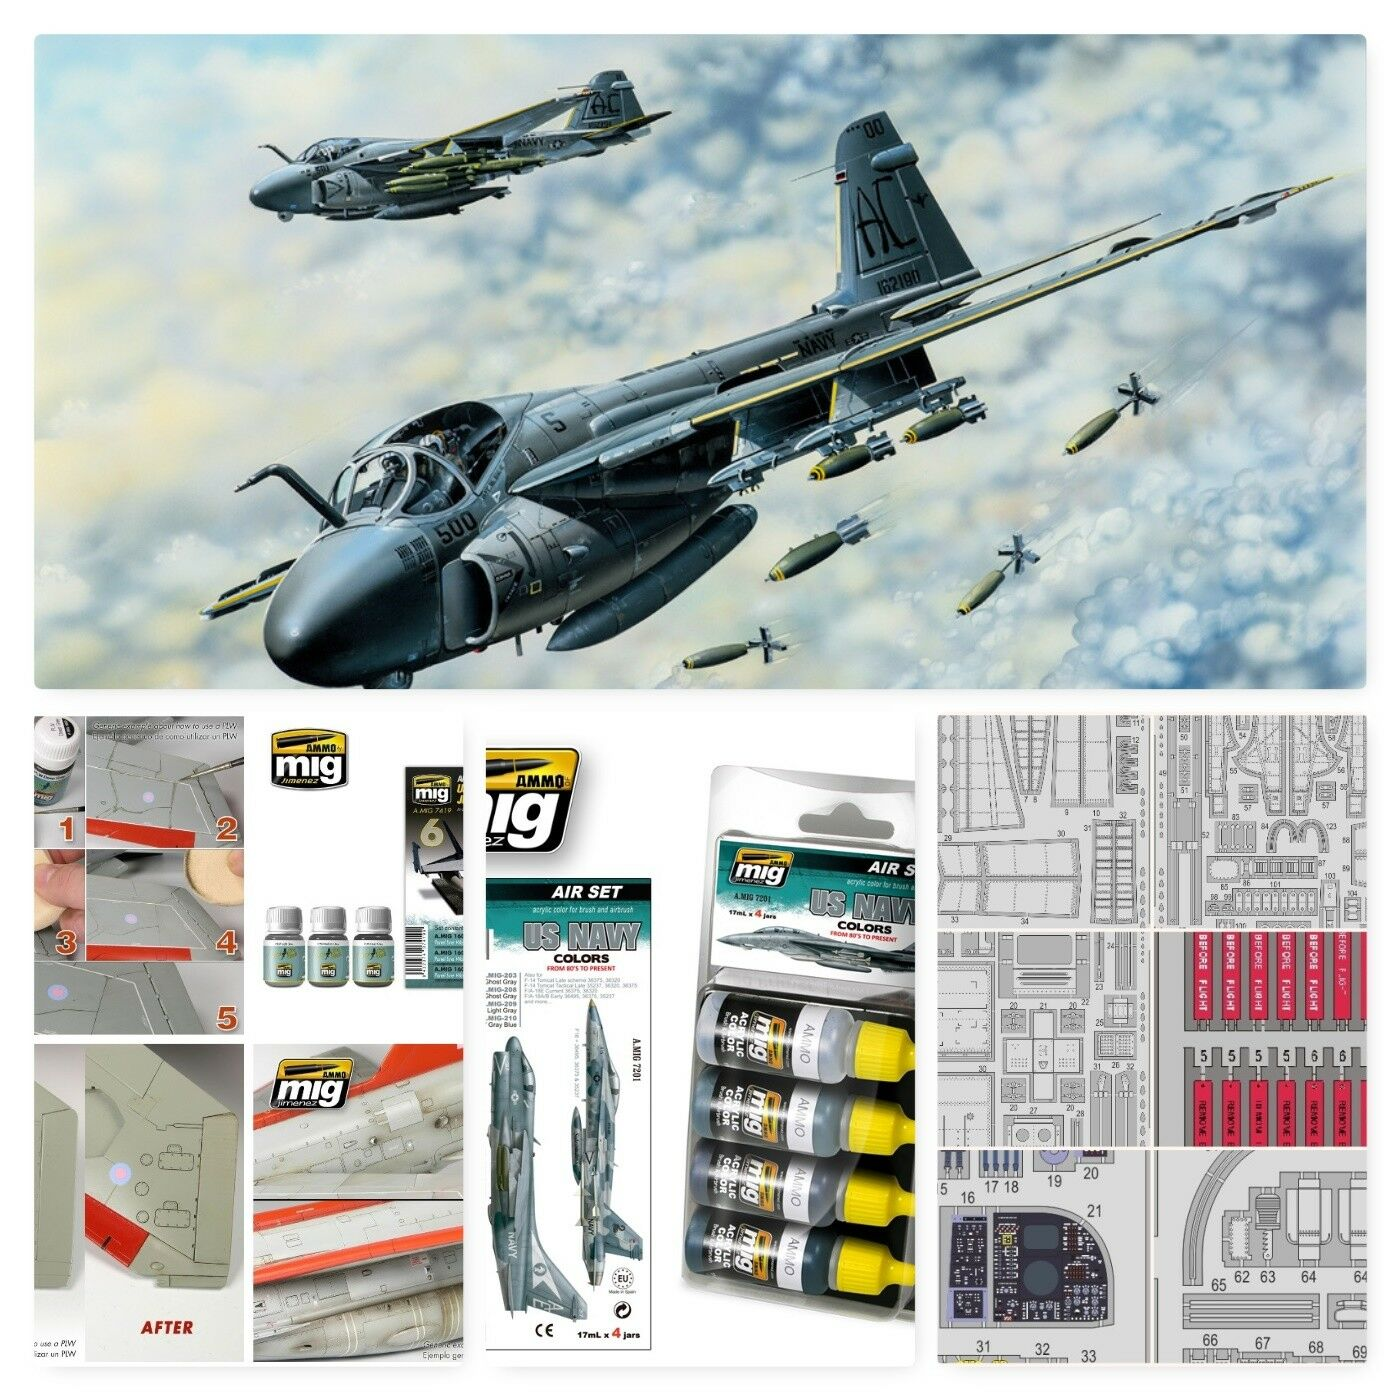 A-6E tranvía intruso 1 48 Hobby Boss (Combo-pack)